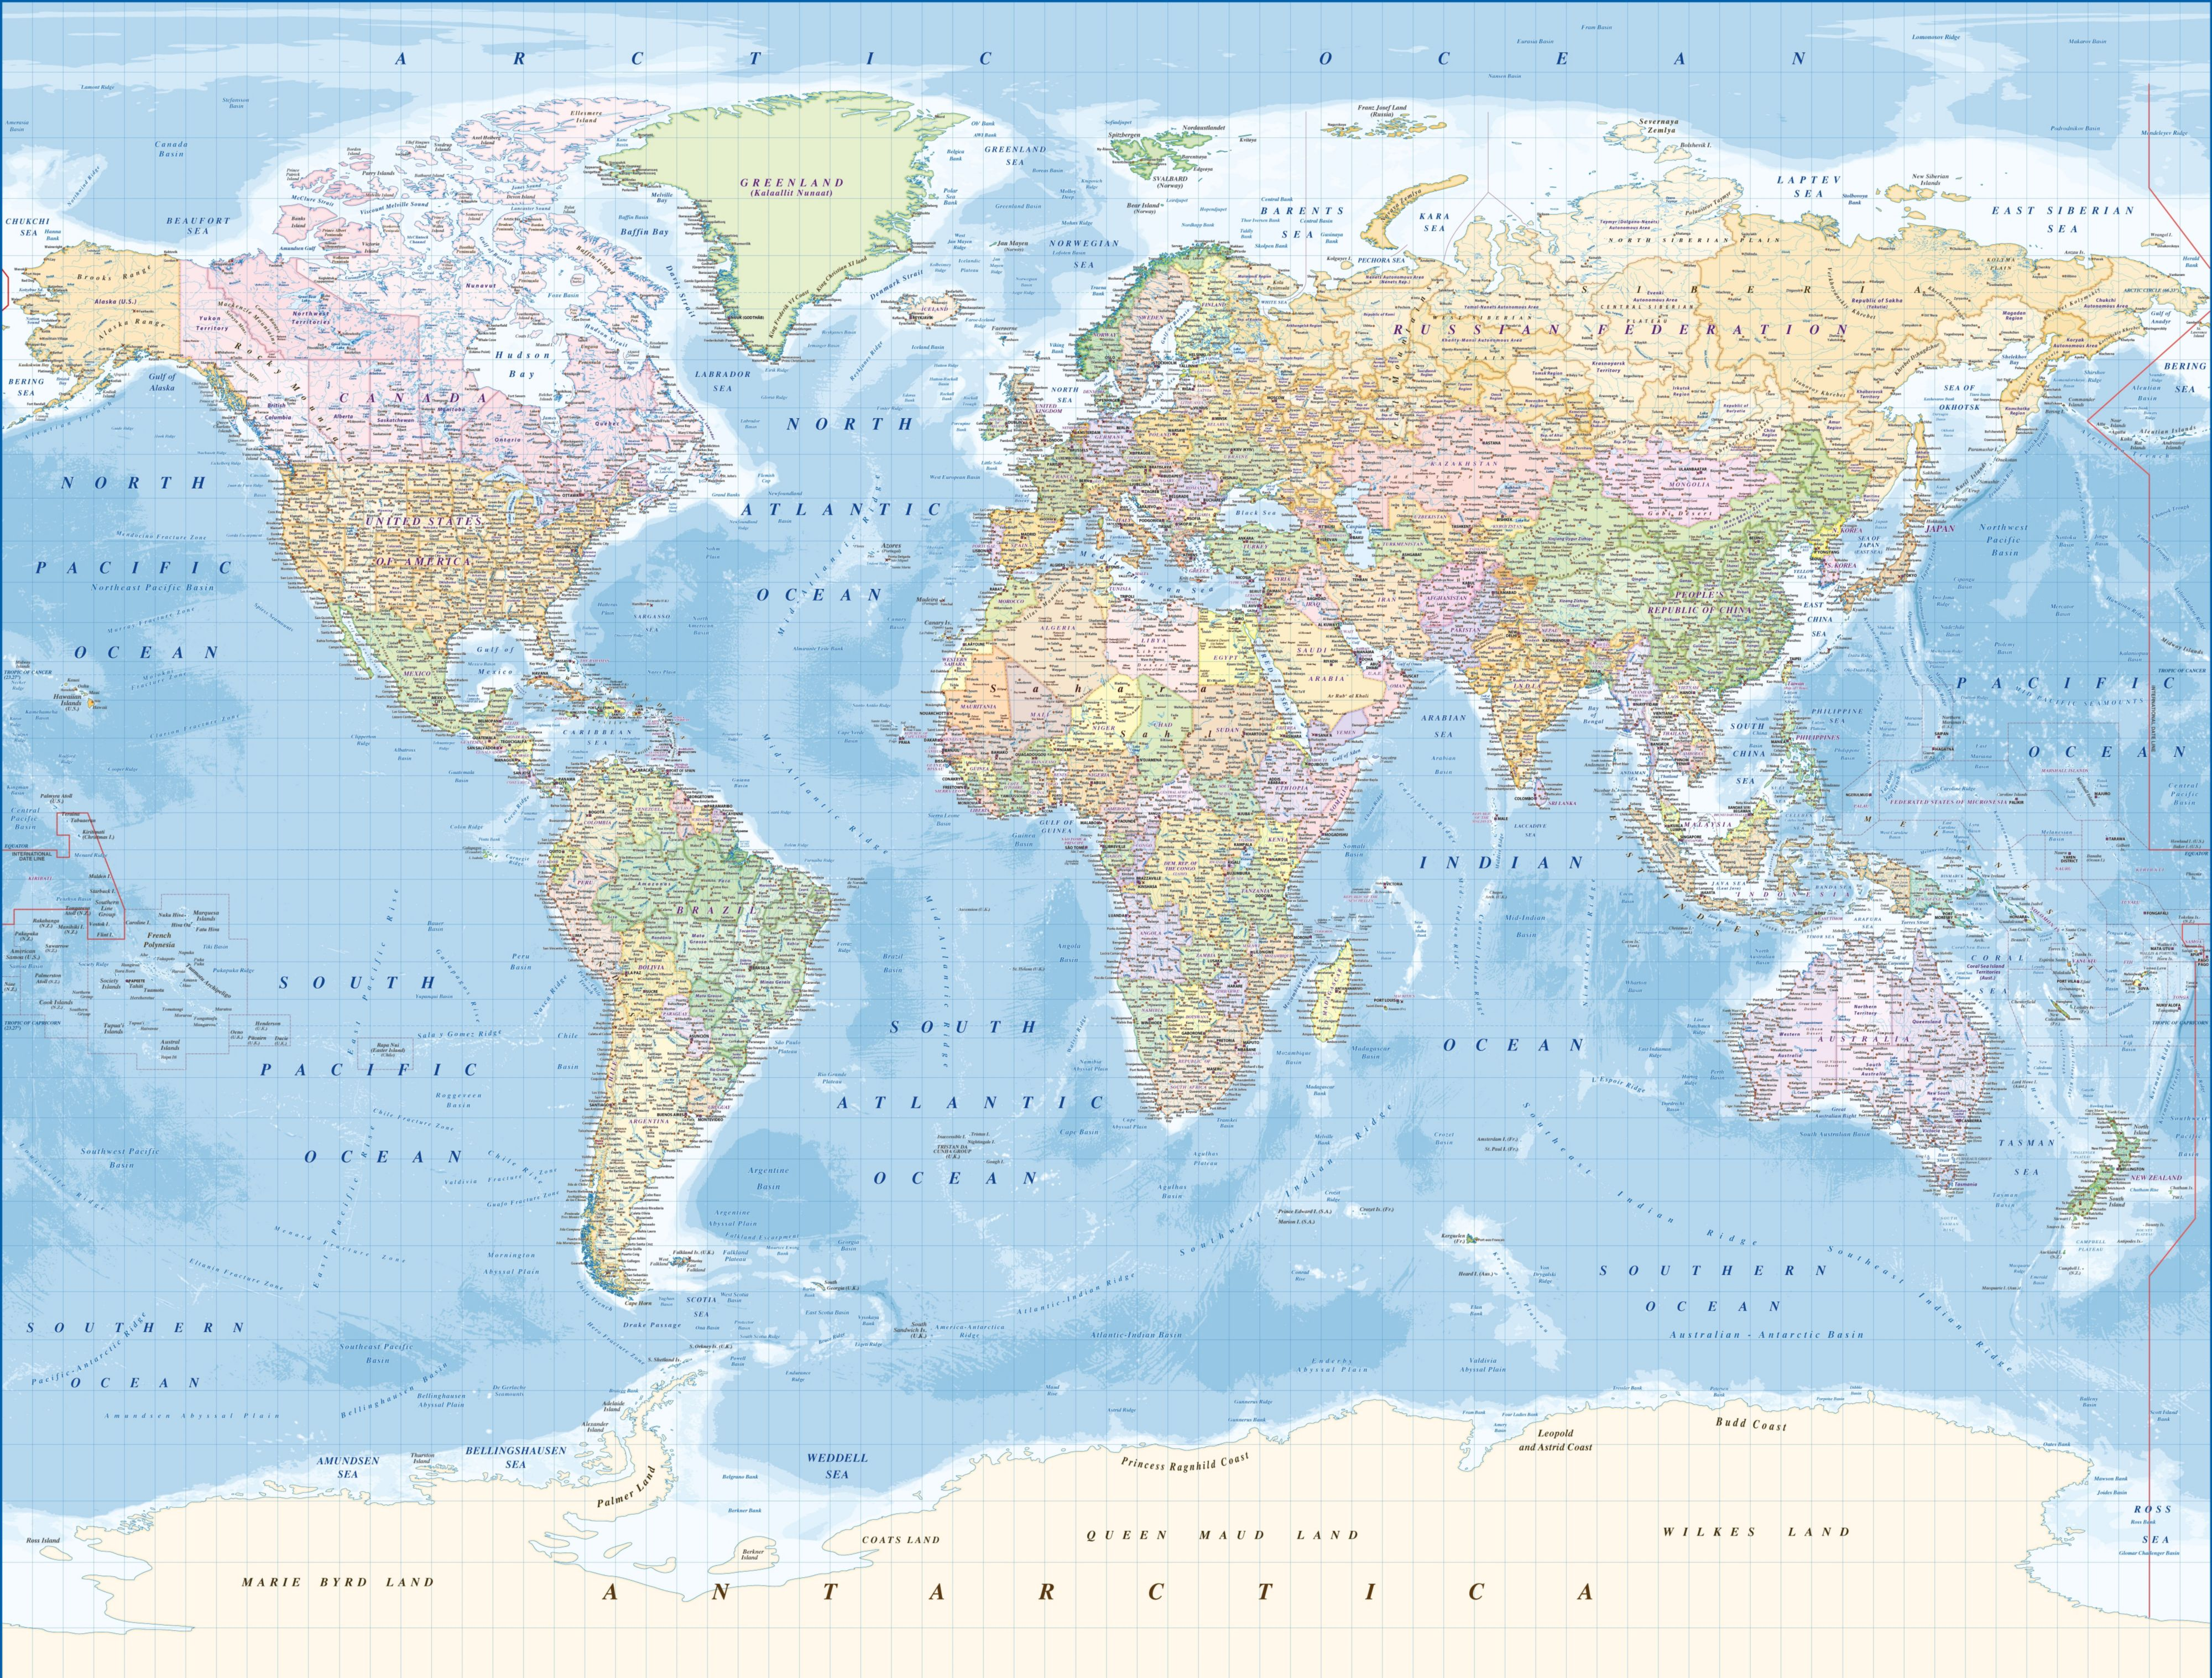 B&q Map Of The World , HD Wallpaper & Backgrounds